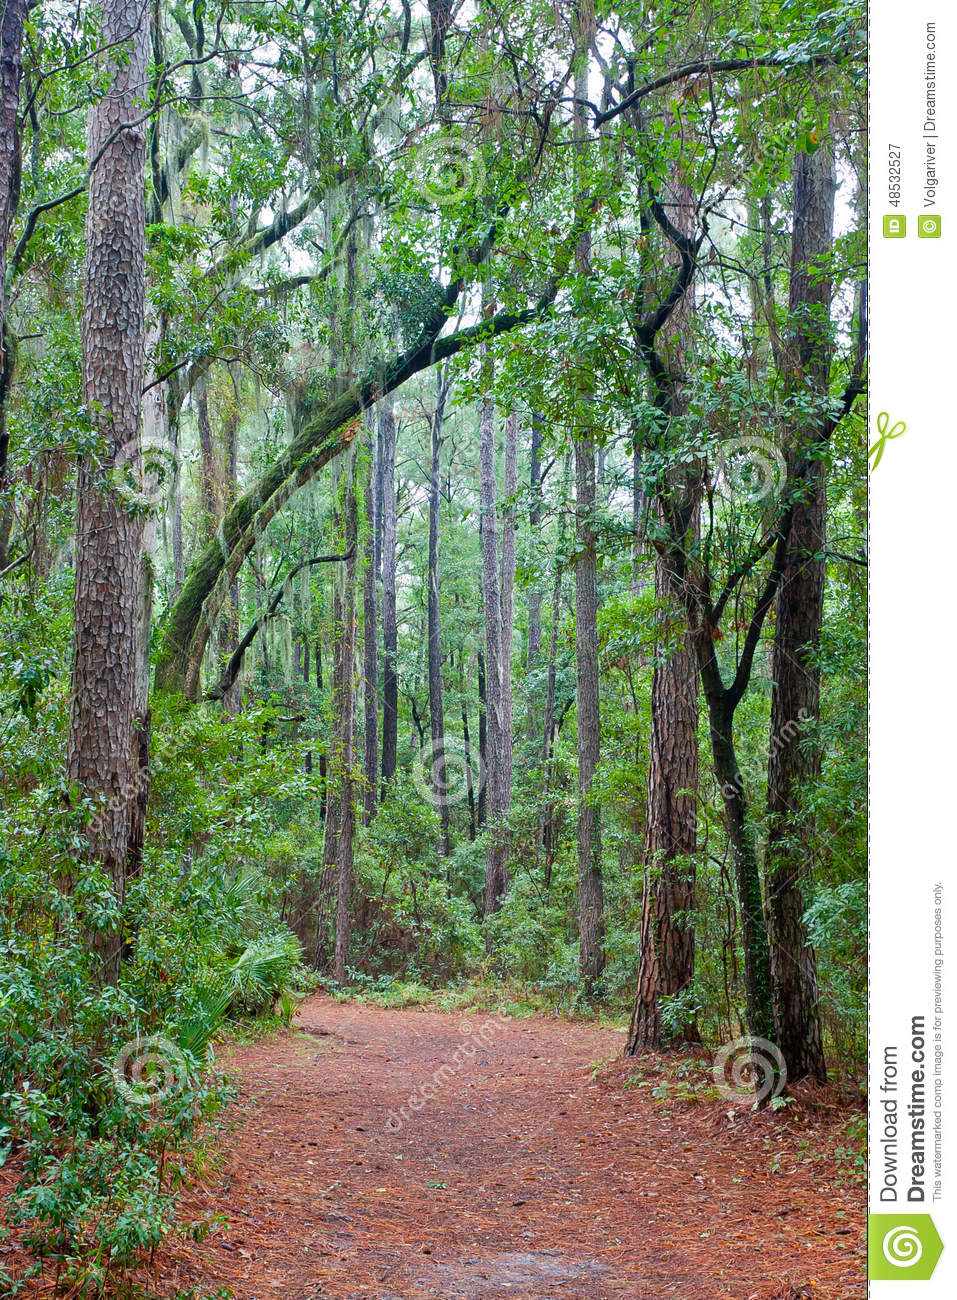 Royalty-Free Stock Photo & Forest Path With A Canopy Of Trees And Spanish Moss Stock Image ...